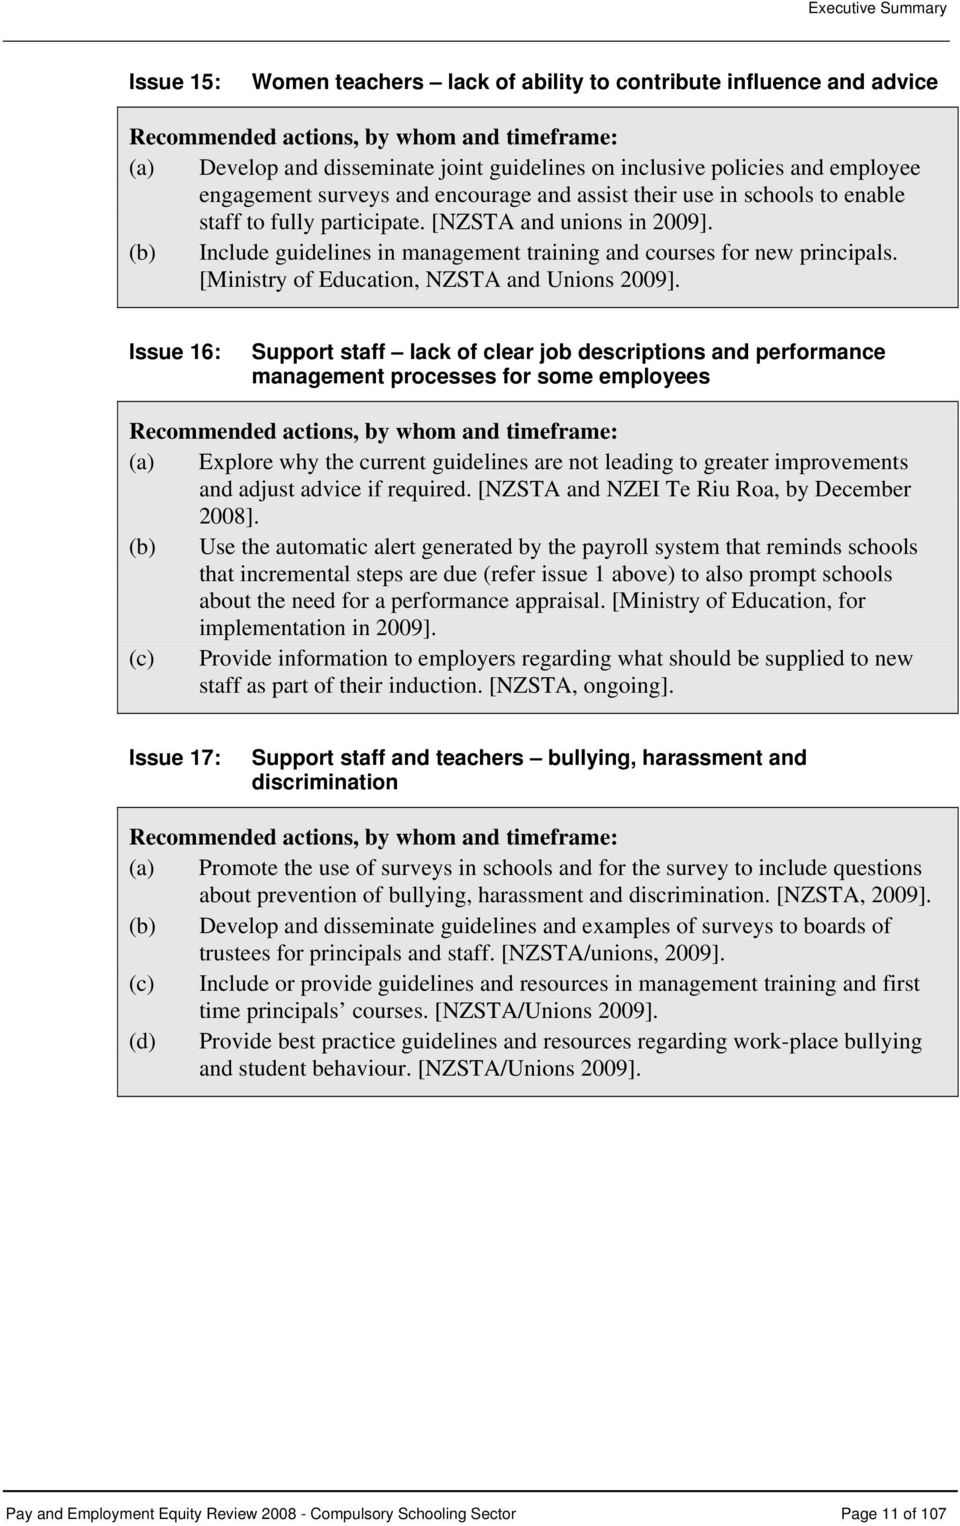 (b) Include guidelines in management training and courses for new principals. [Ministry of Education, NZSTA and Unions 2009].